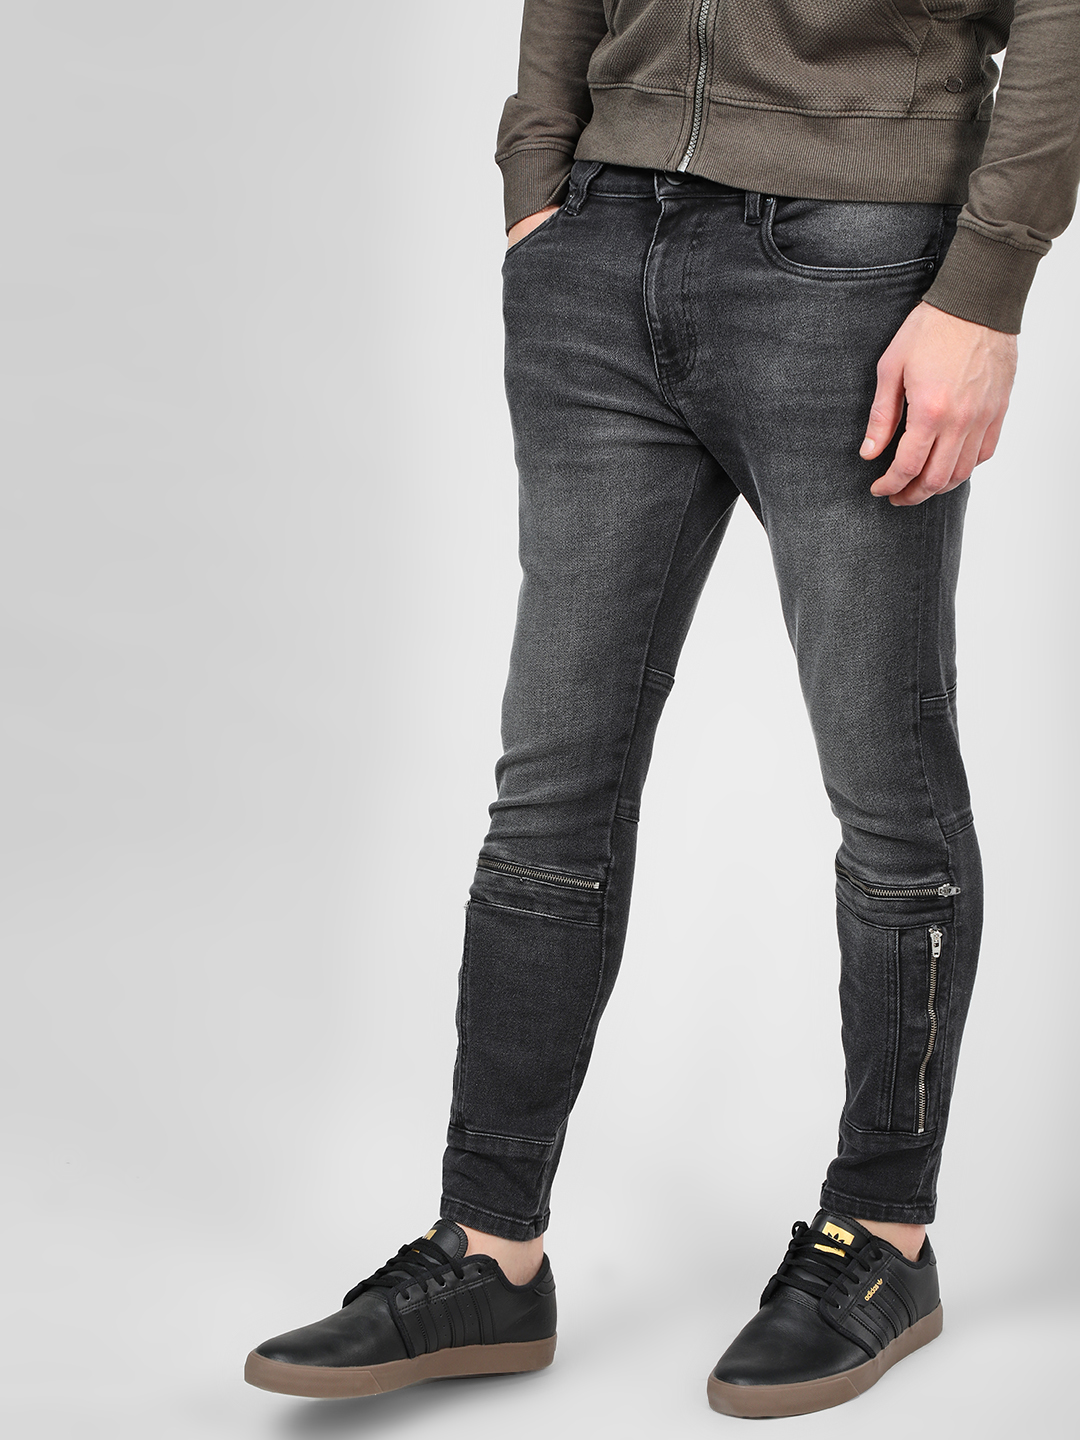 X.O.Y.O Grey Washed Cut & Sew Slim Fit Jeans 1